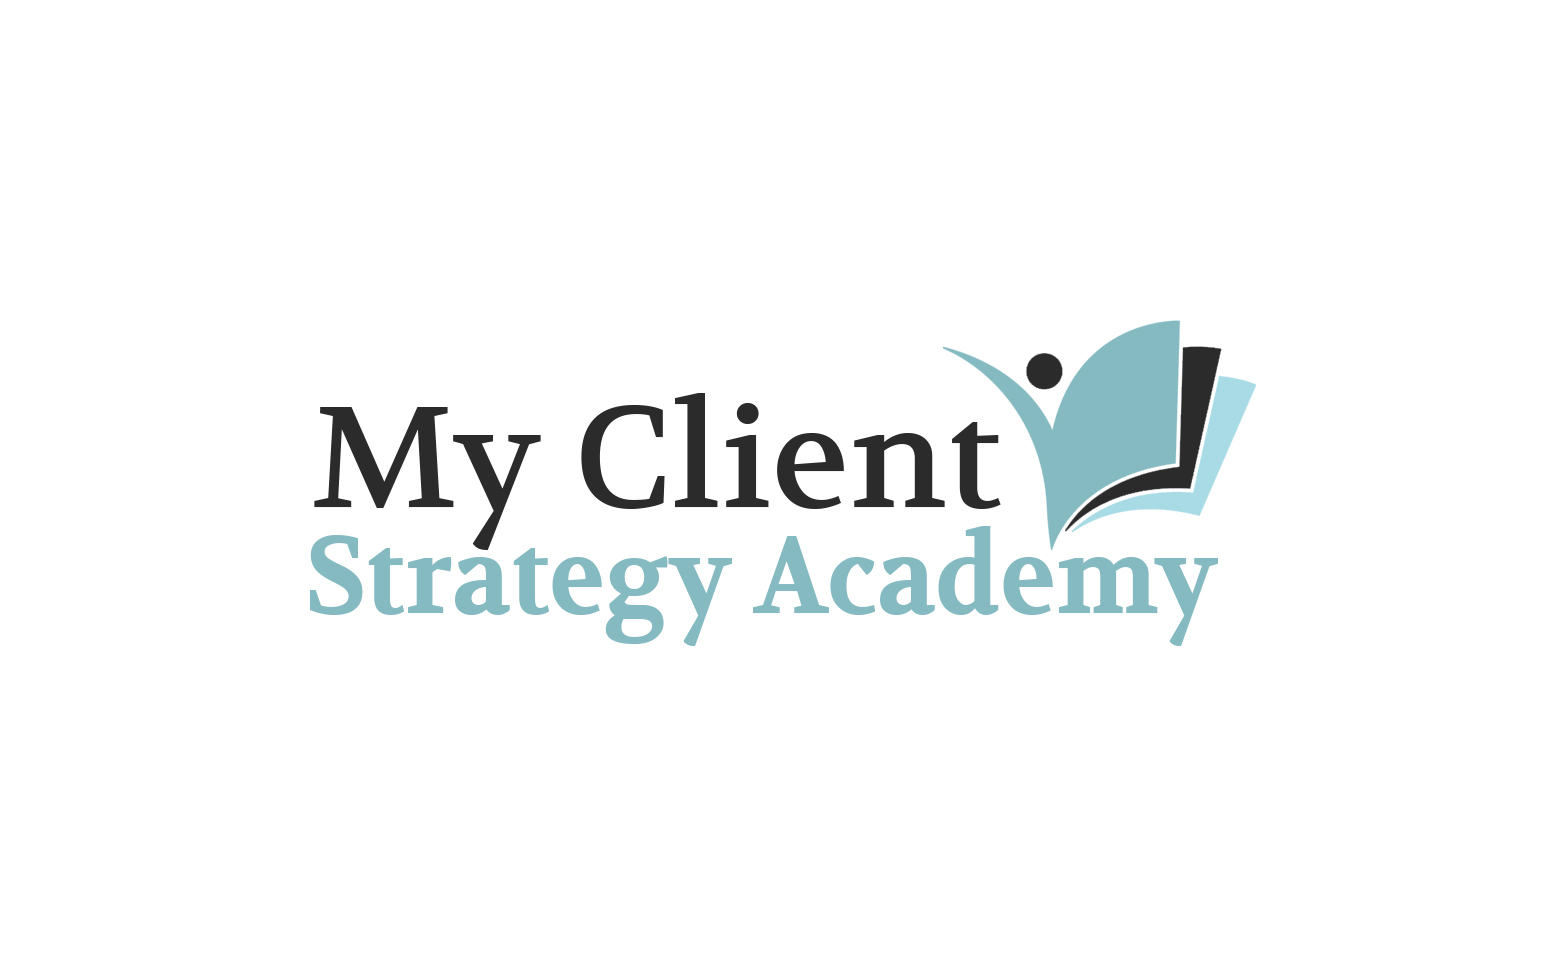 My Client Strategy Academy